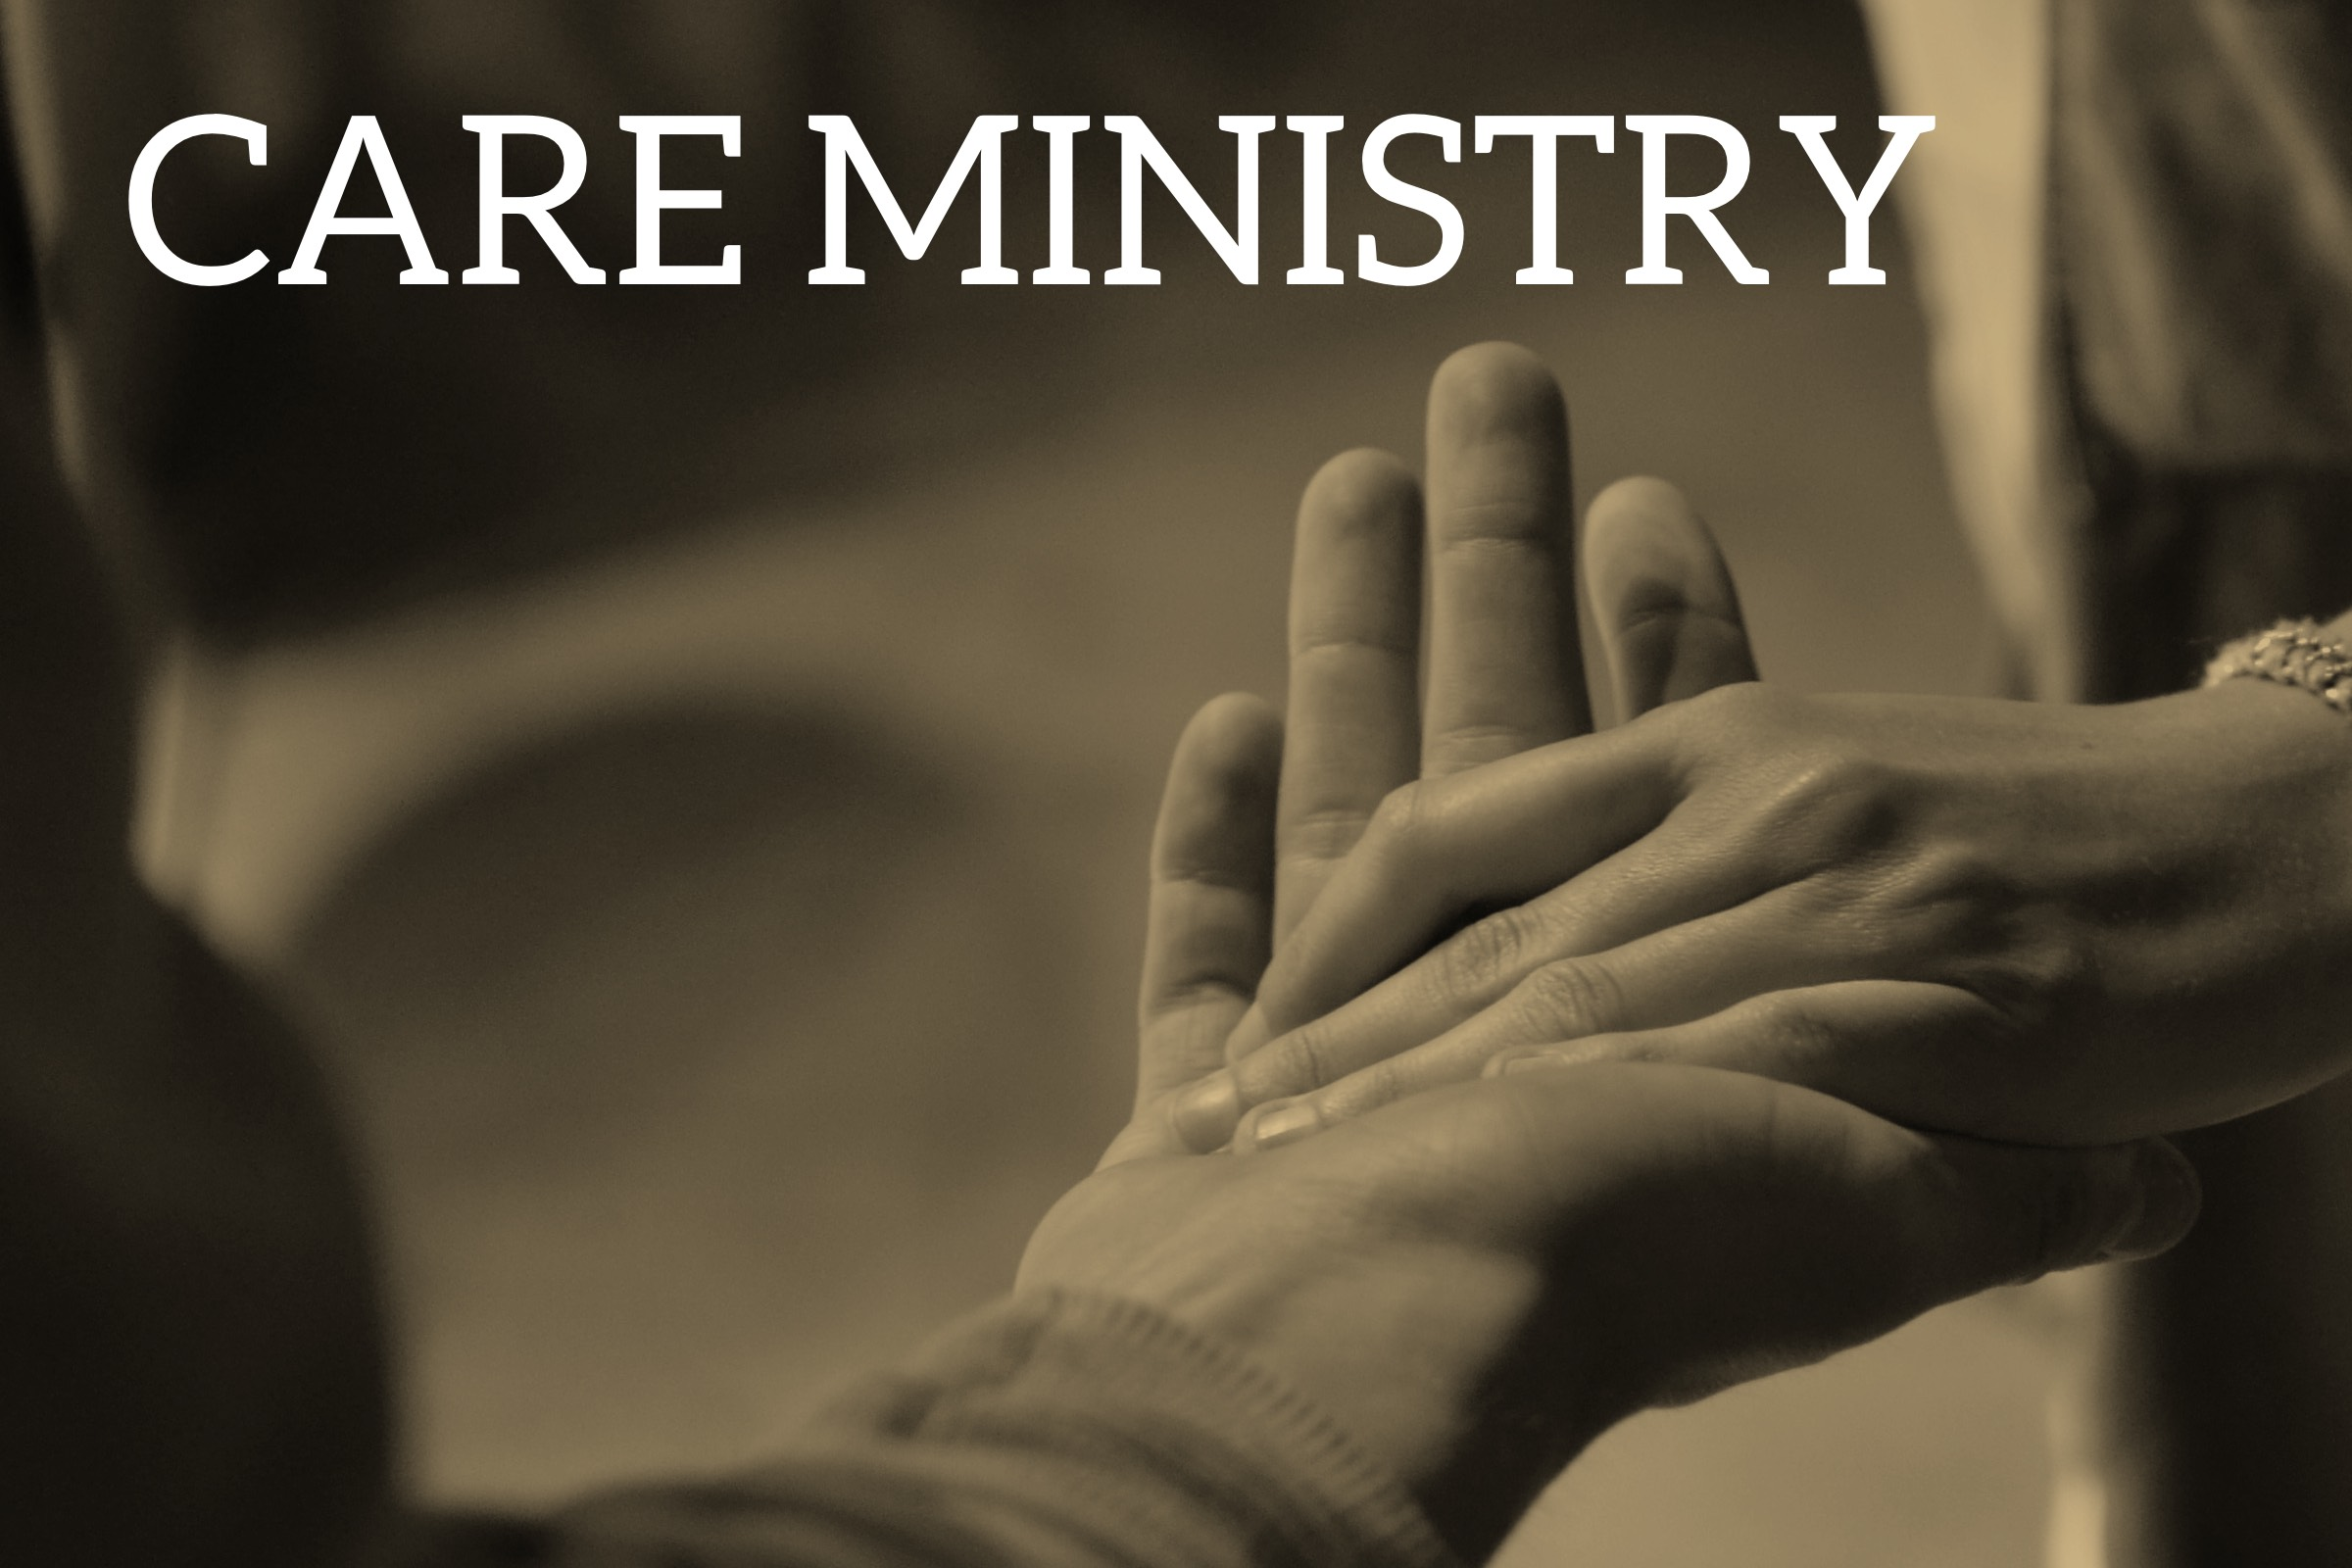 Care Ministry_small.jpg